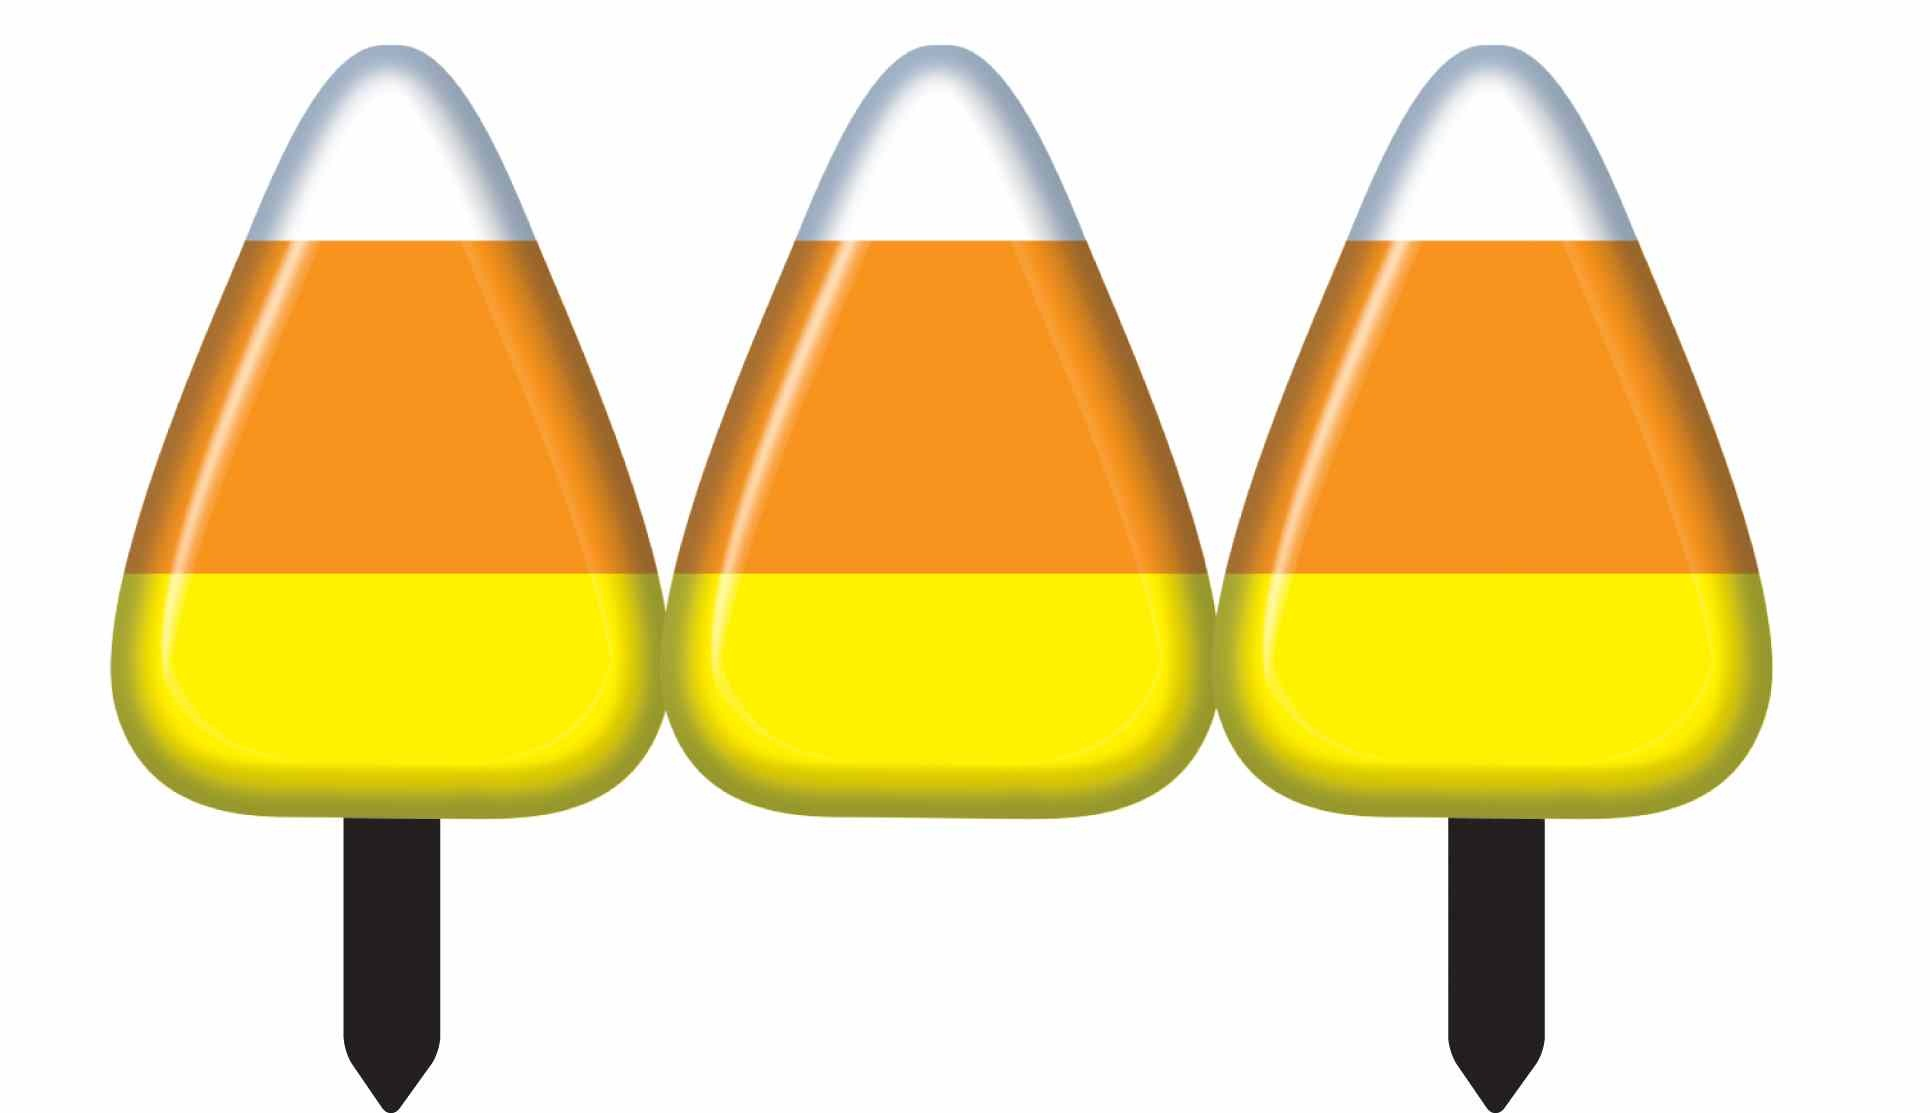 1930x1113 Pictures Of Candy Corn Clipart Free To Use Clip Art Resource